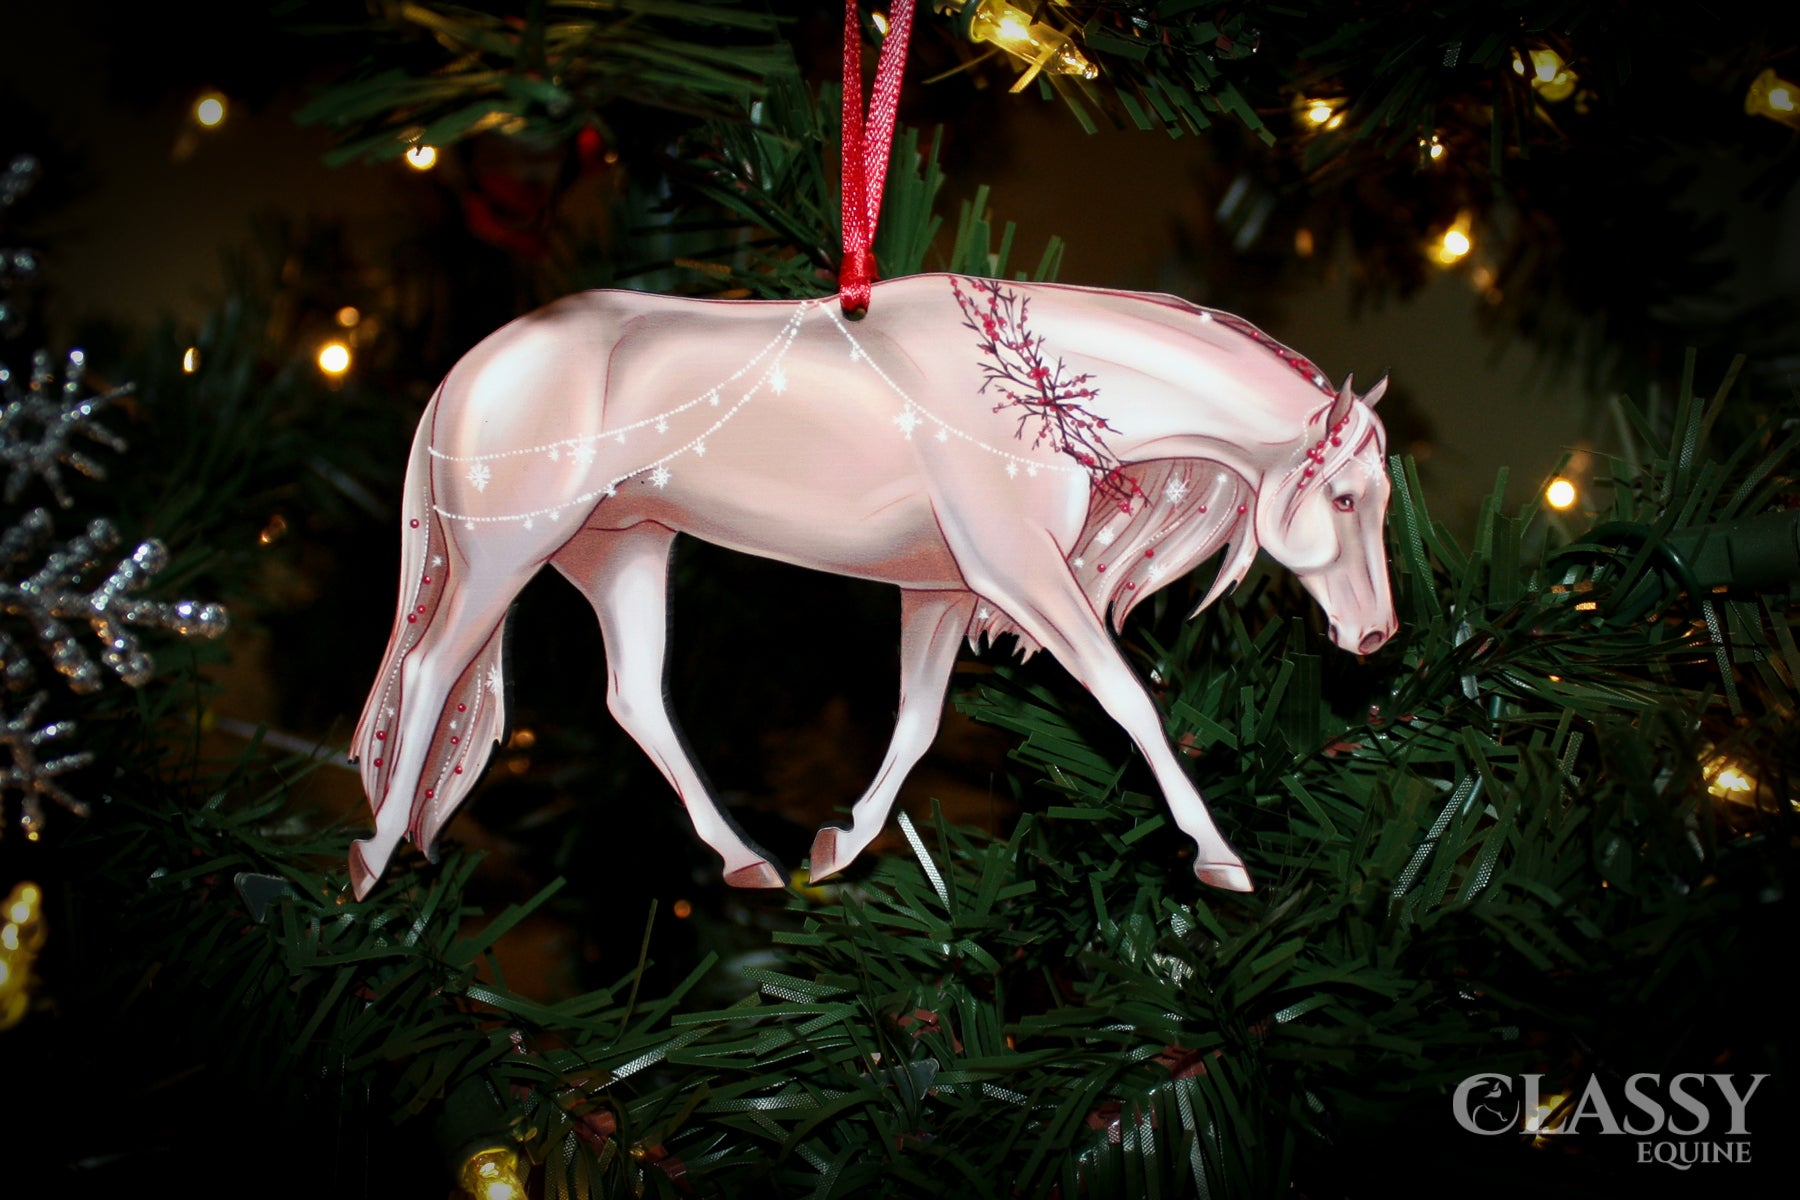 Quarter Horse Christmas Ornament Adorned In Snowflakes And Berries Classy Equine